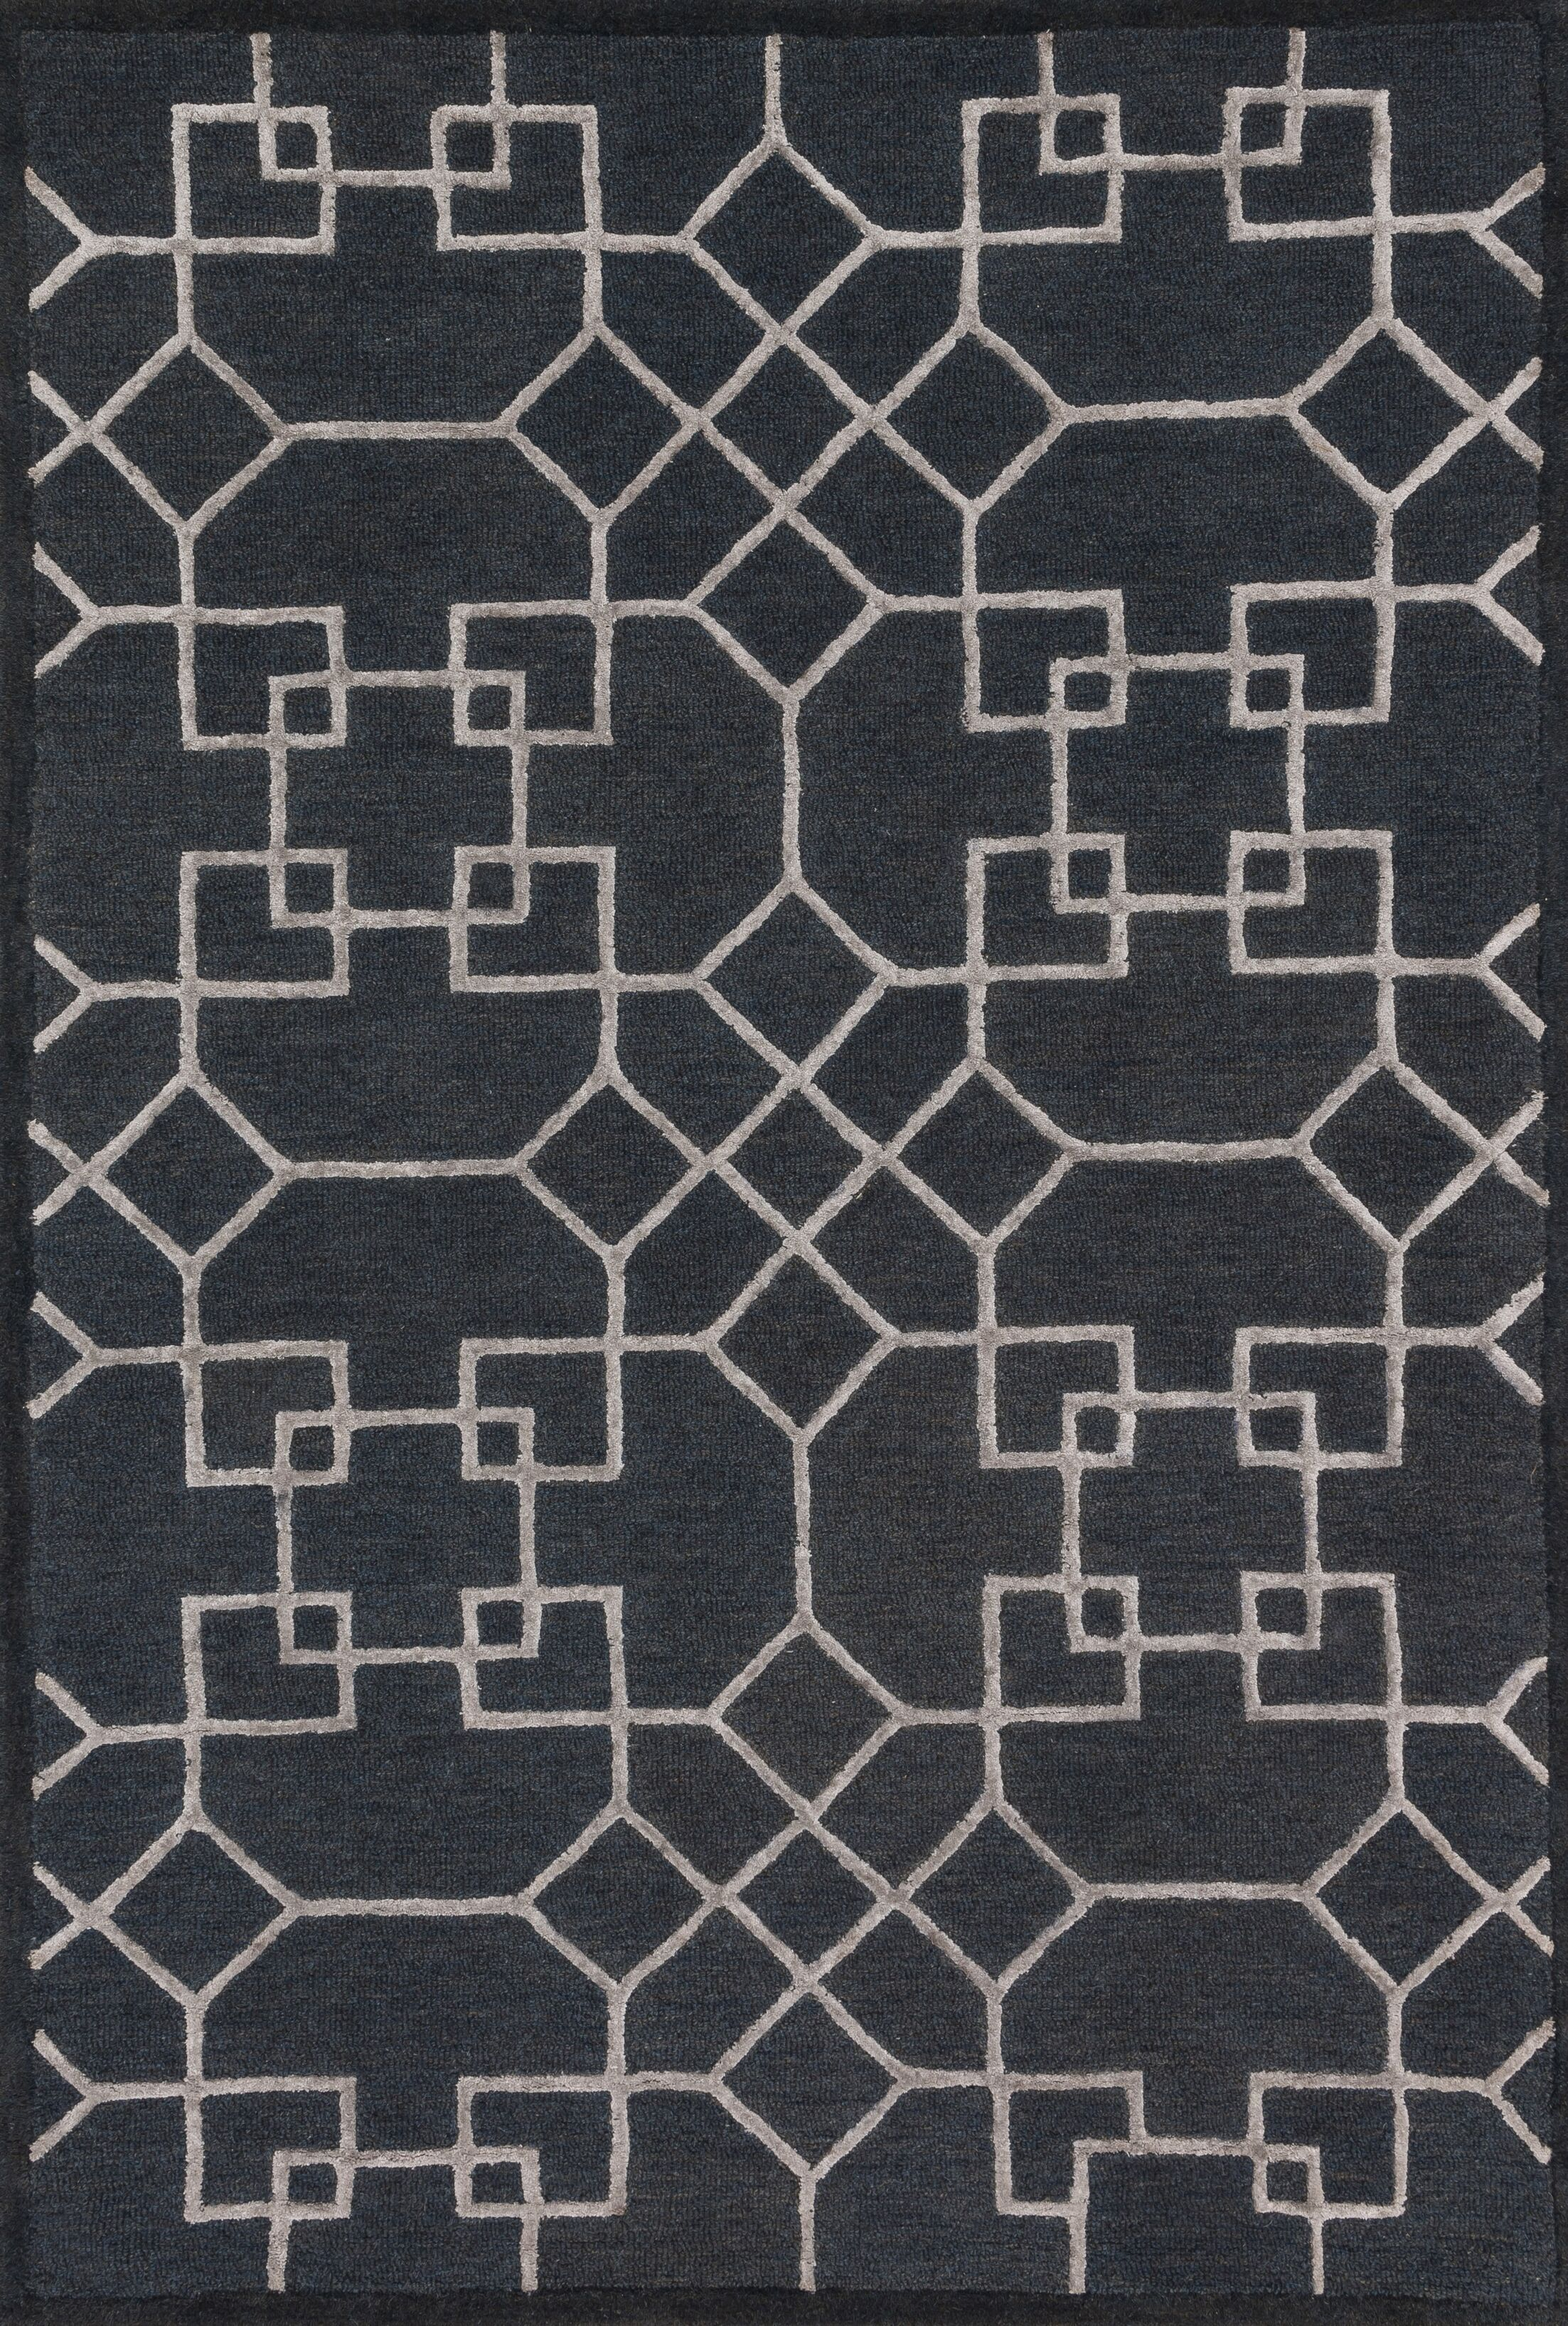 Kirkbride Charcoal/Silver Area Rug Rug Size: Rectangle 3'6